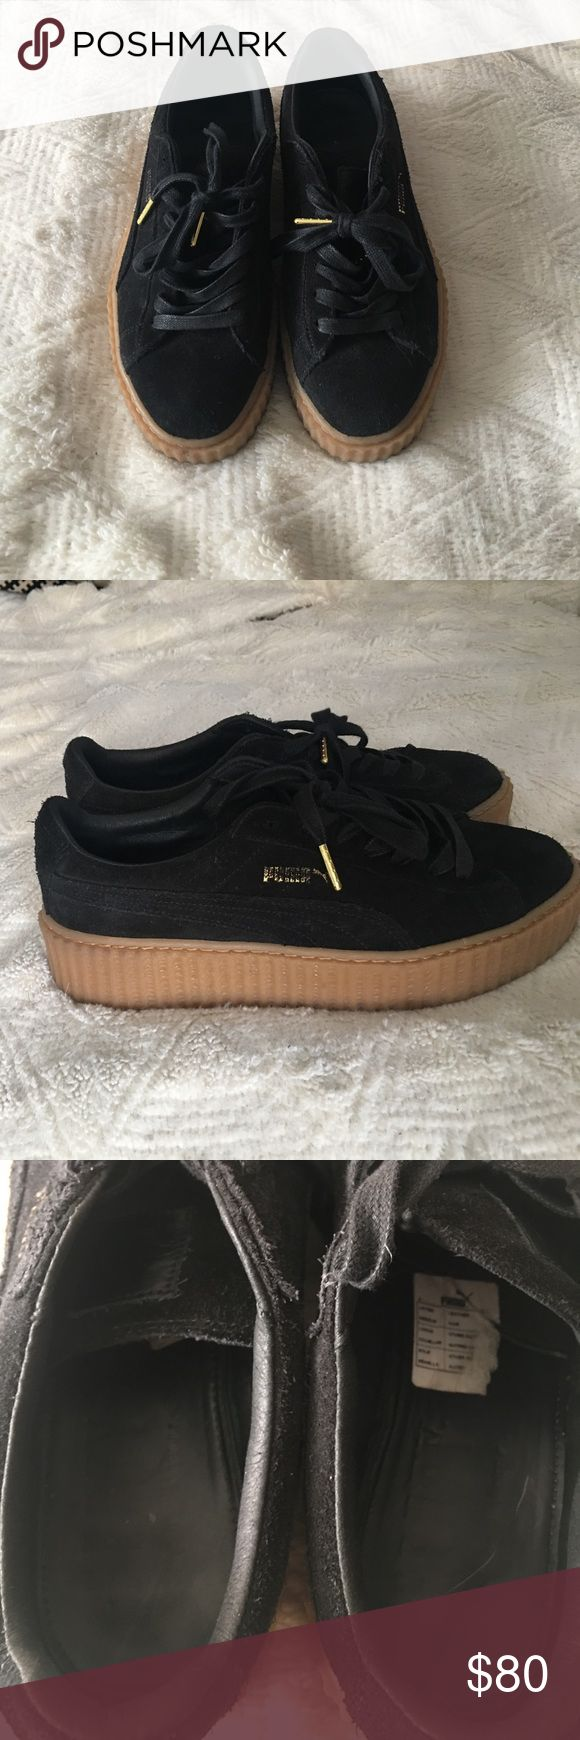 Fenty puma black suede creeper size 9 USED size 9 black suede nude sole Fenty Puma creeper. Love them but never wear them bc they're a bit small. Puma Shoes Sneakers